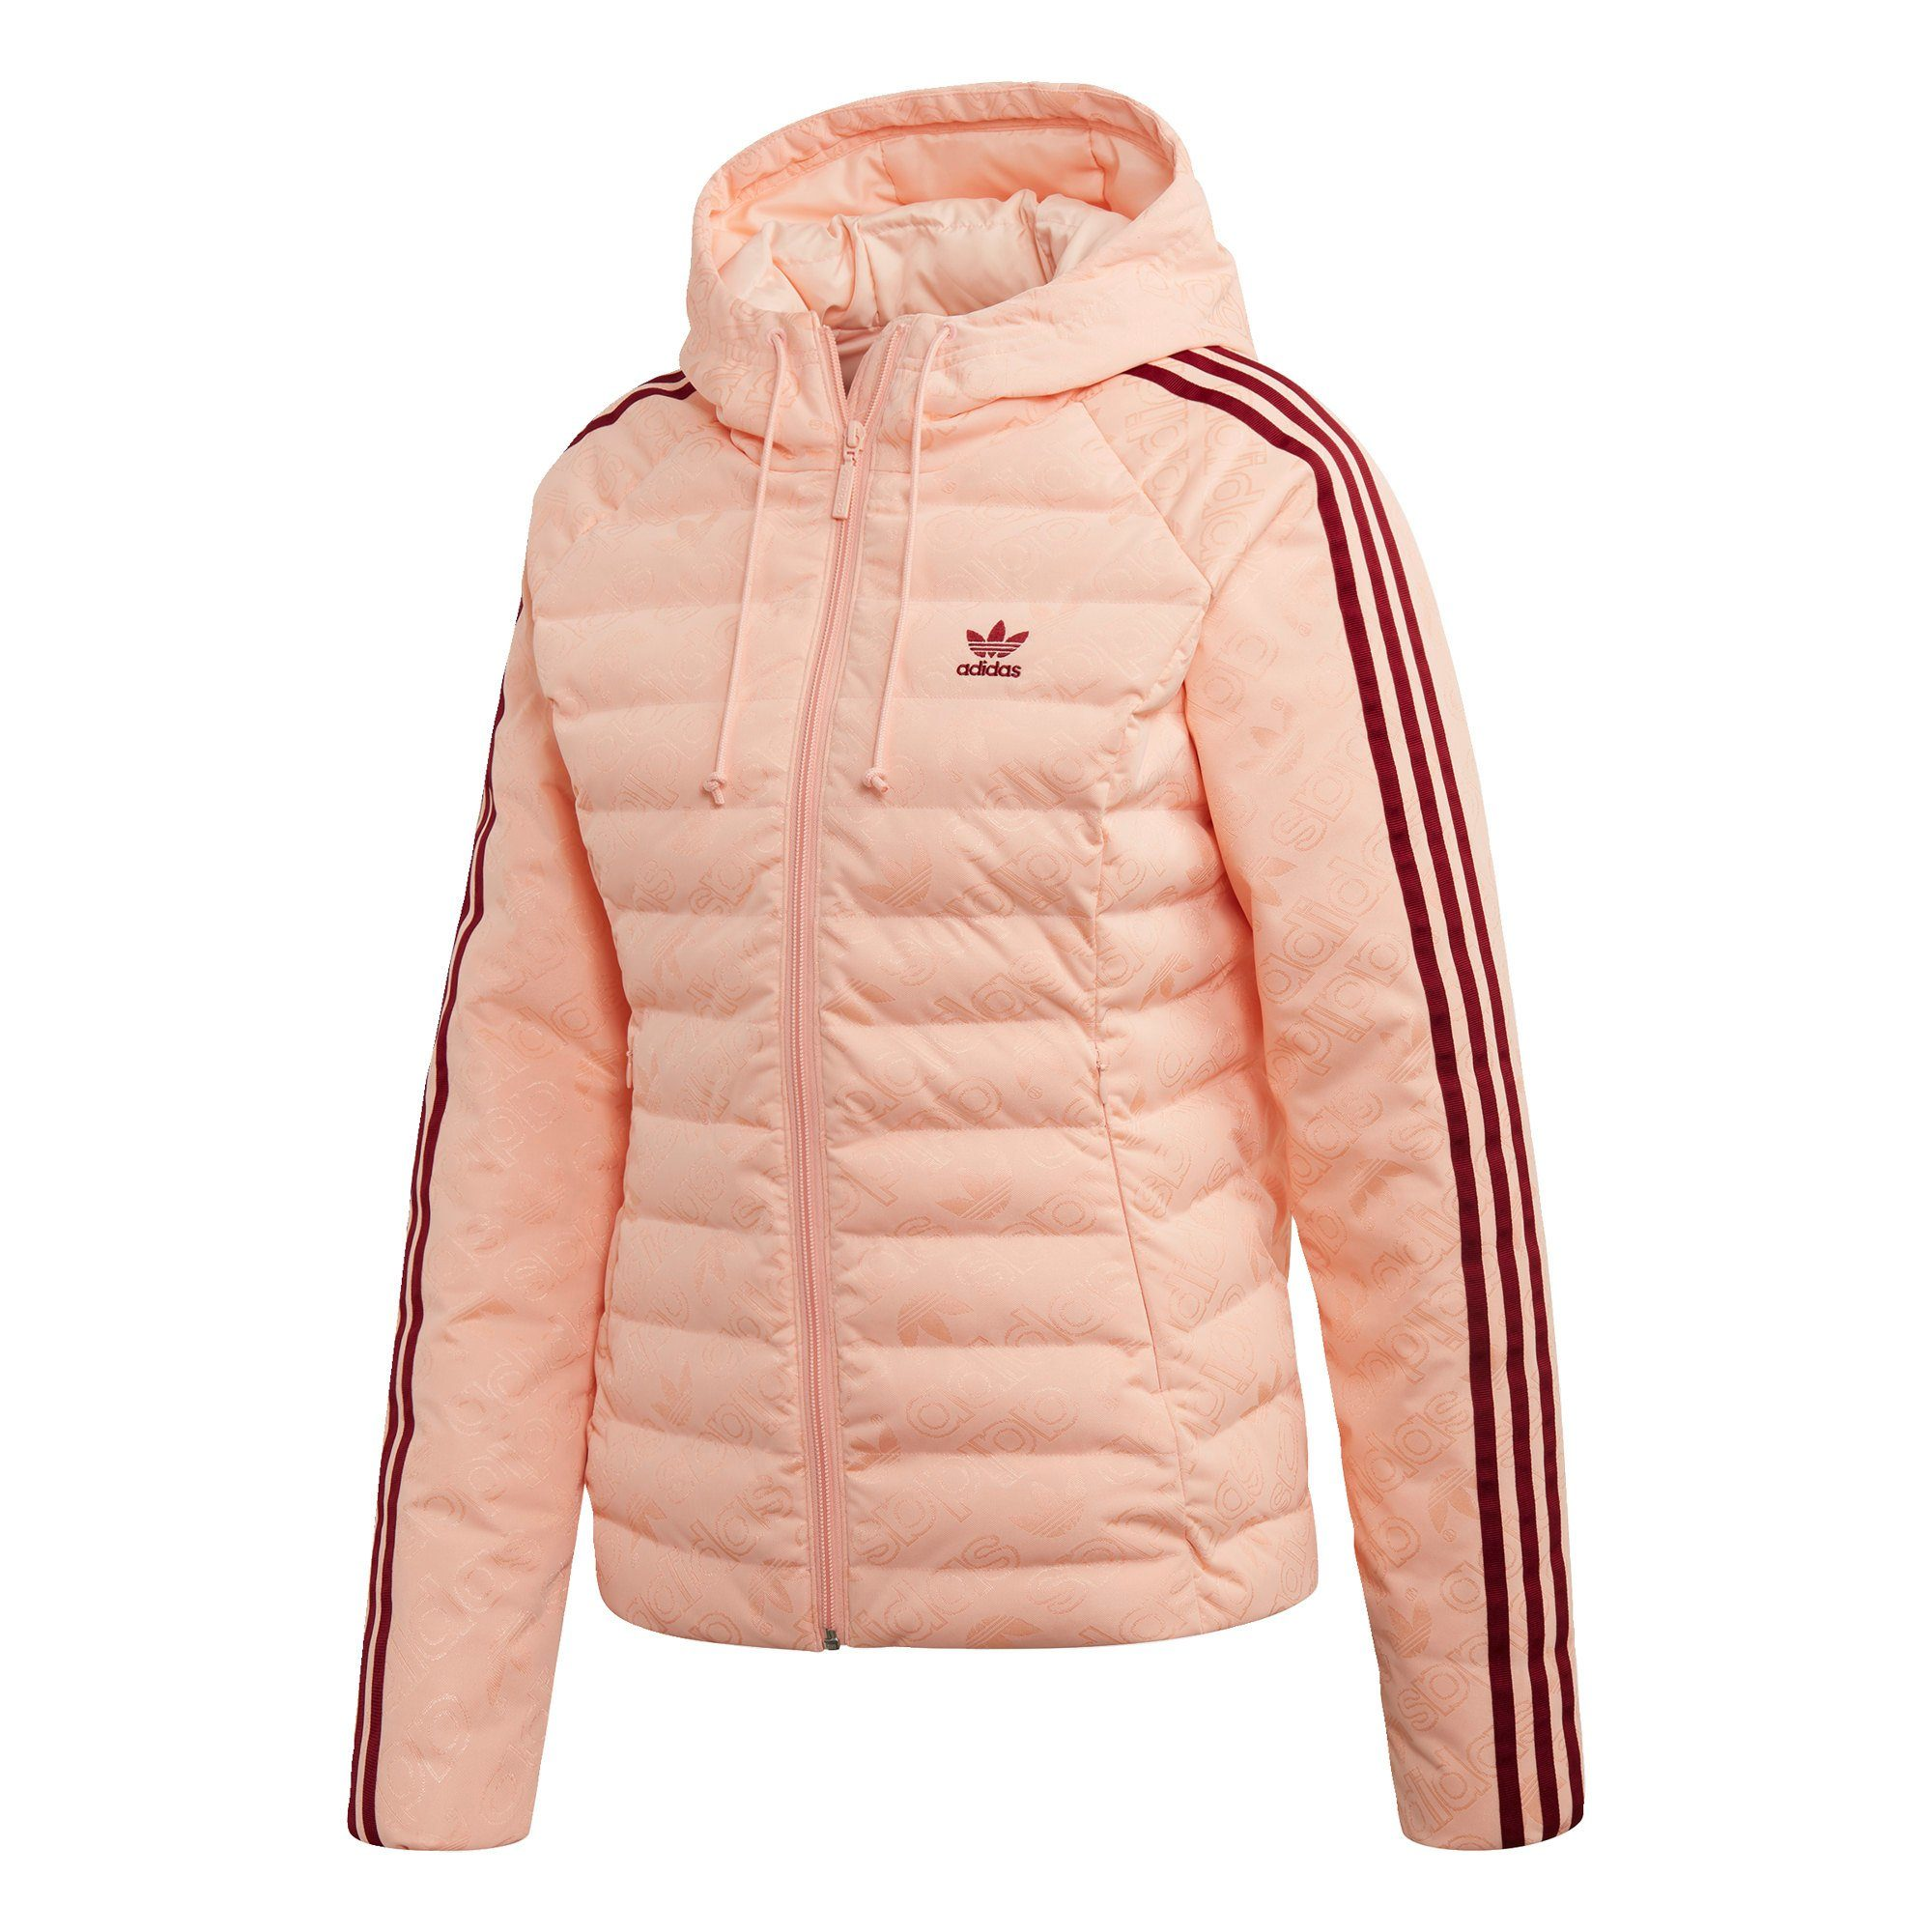 adidas Originals Funktionsjacke »Monogram Slim Jacket« online kaufen | OTTO